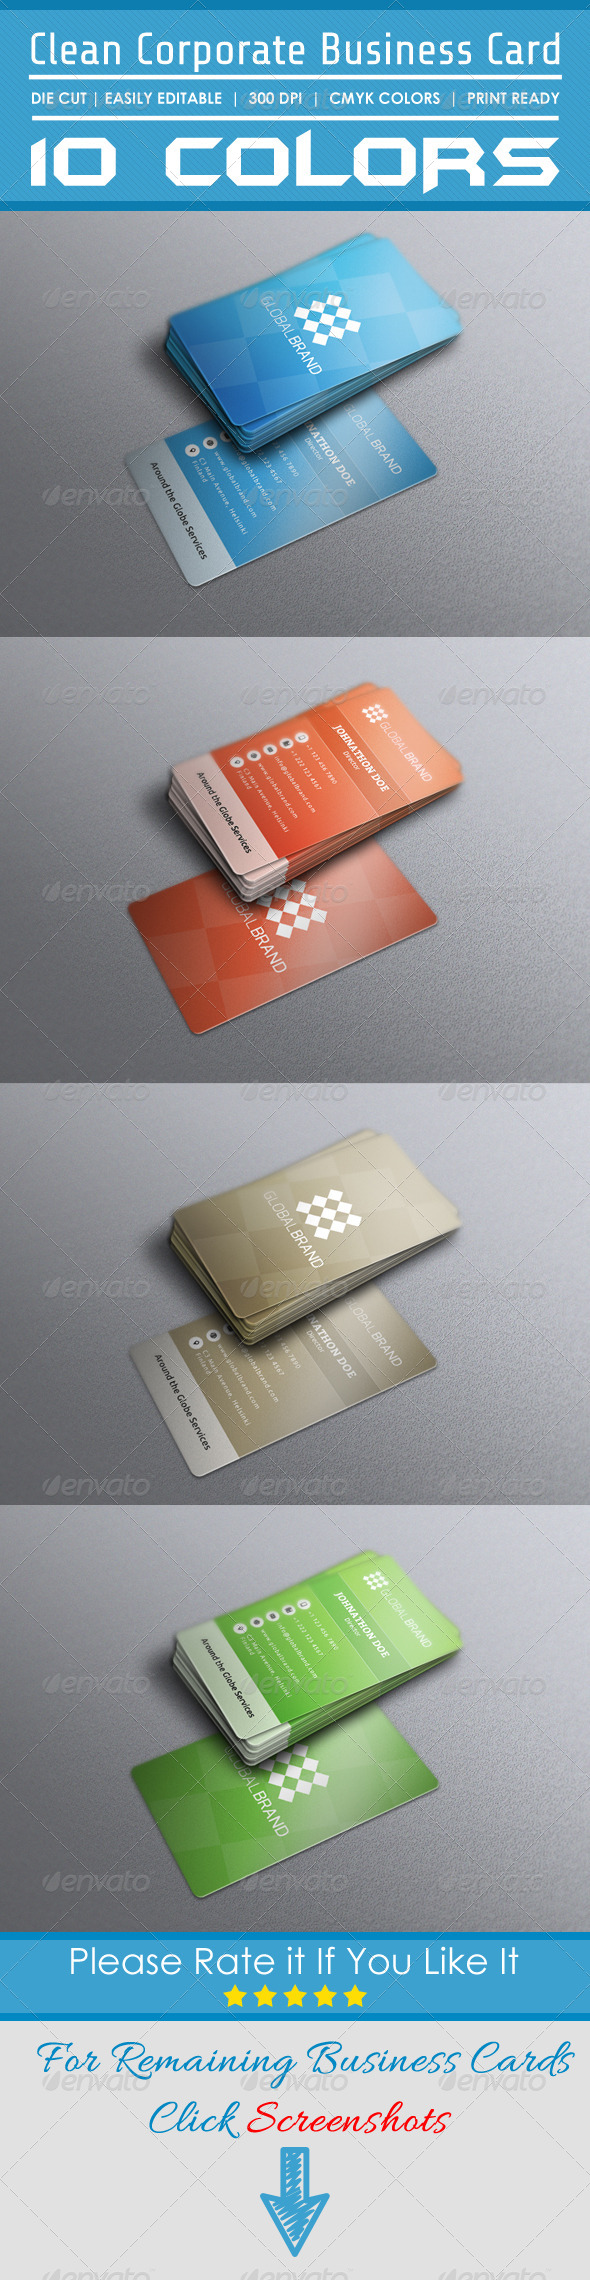 GraphicRiver Clean Corporate Business Card 8051115